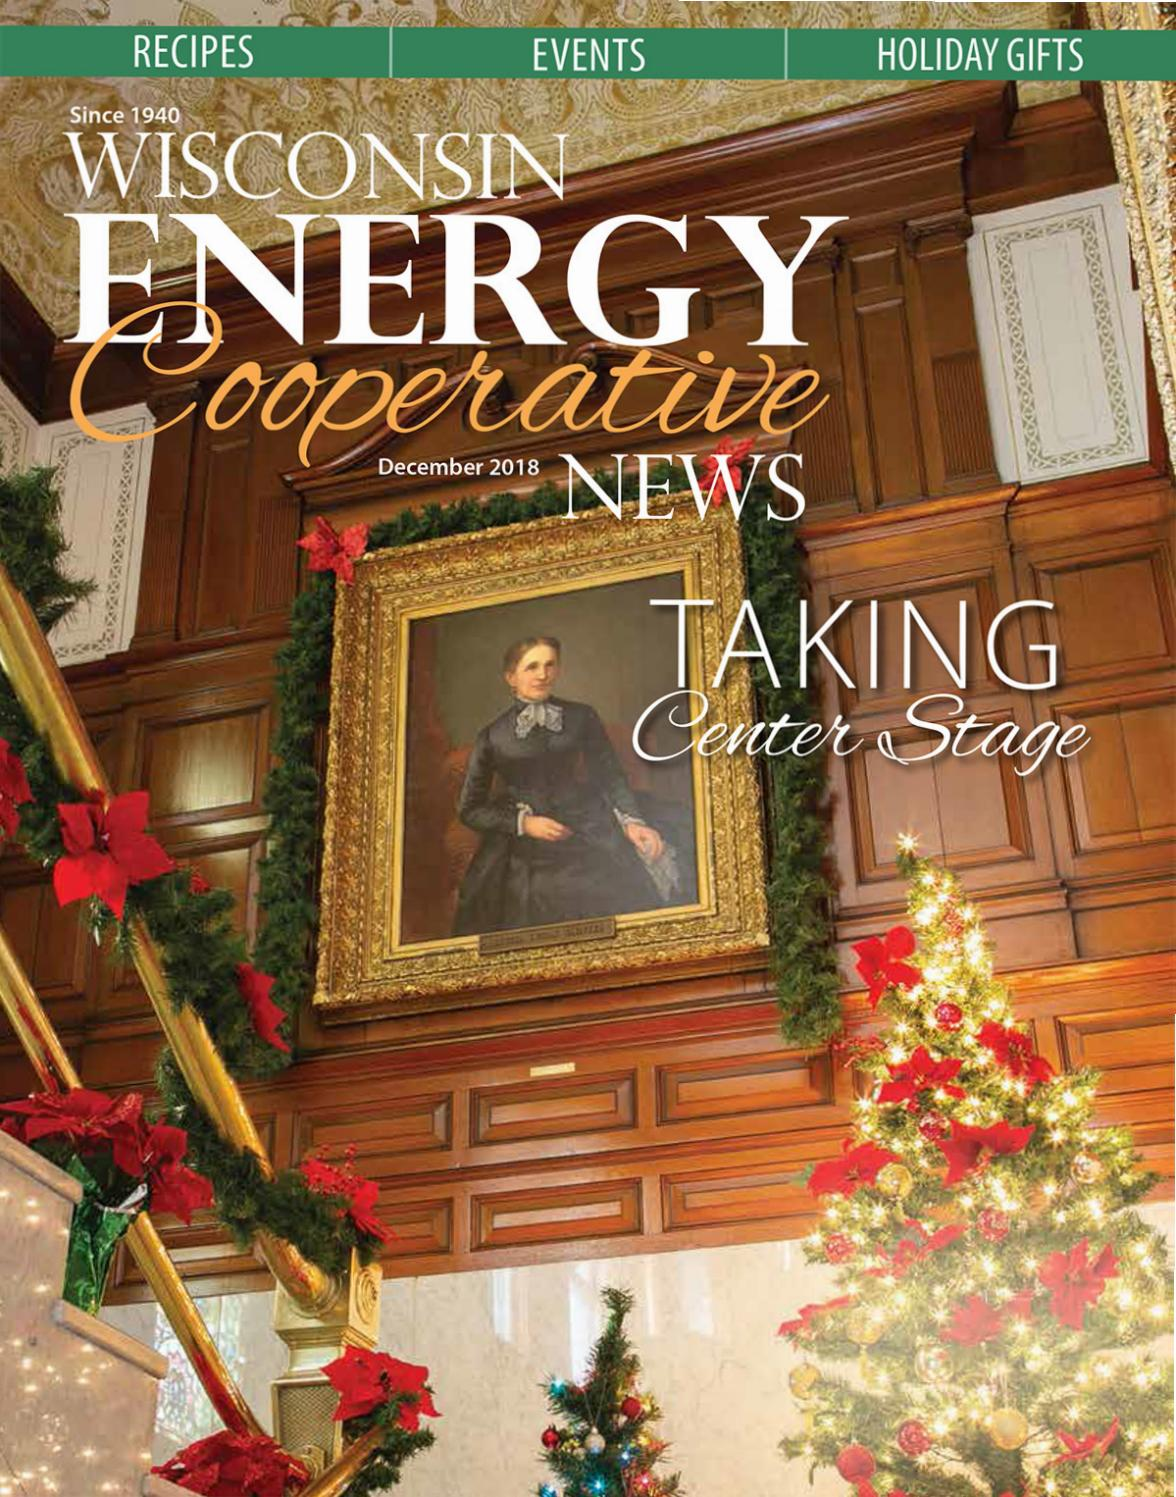 Christmas Eve Service St Johns Lutheran Service December 2020 Sycamore. Il Wisconsin Energy Coop News December 2018 by American MainStreet